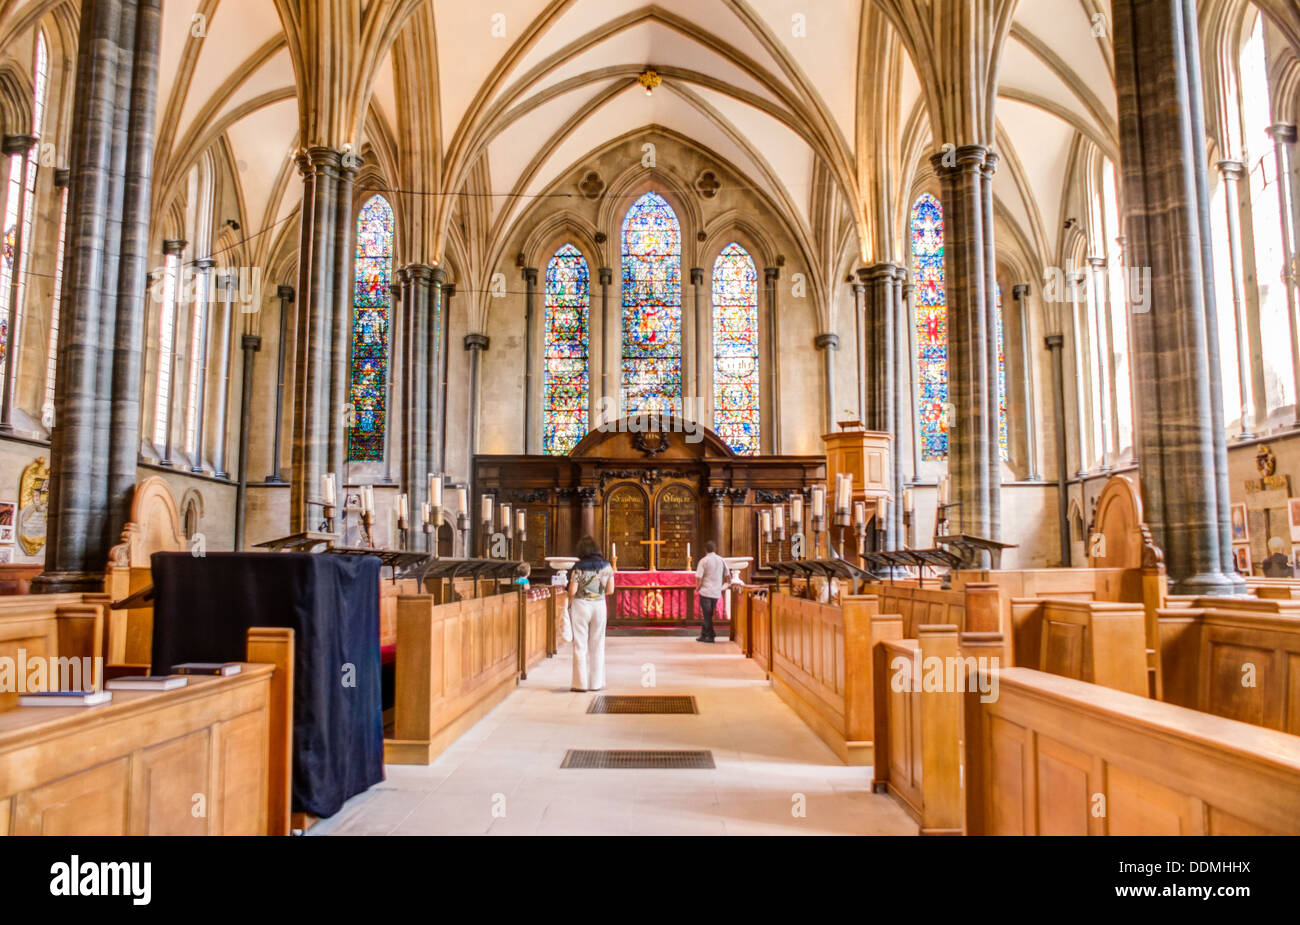 Inside the Holy trinity Temple Church in London looking towards the main, stain glass windows - Stock Image